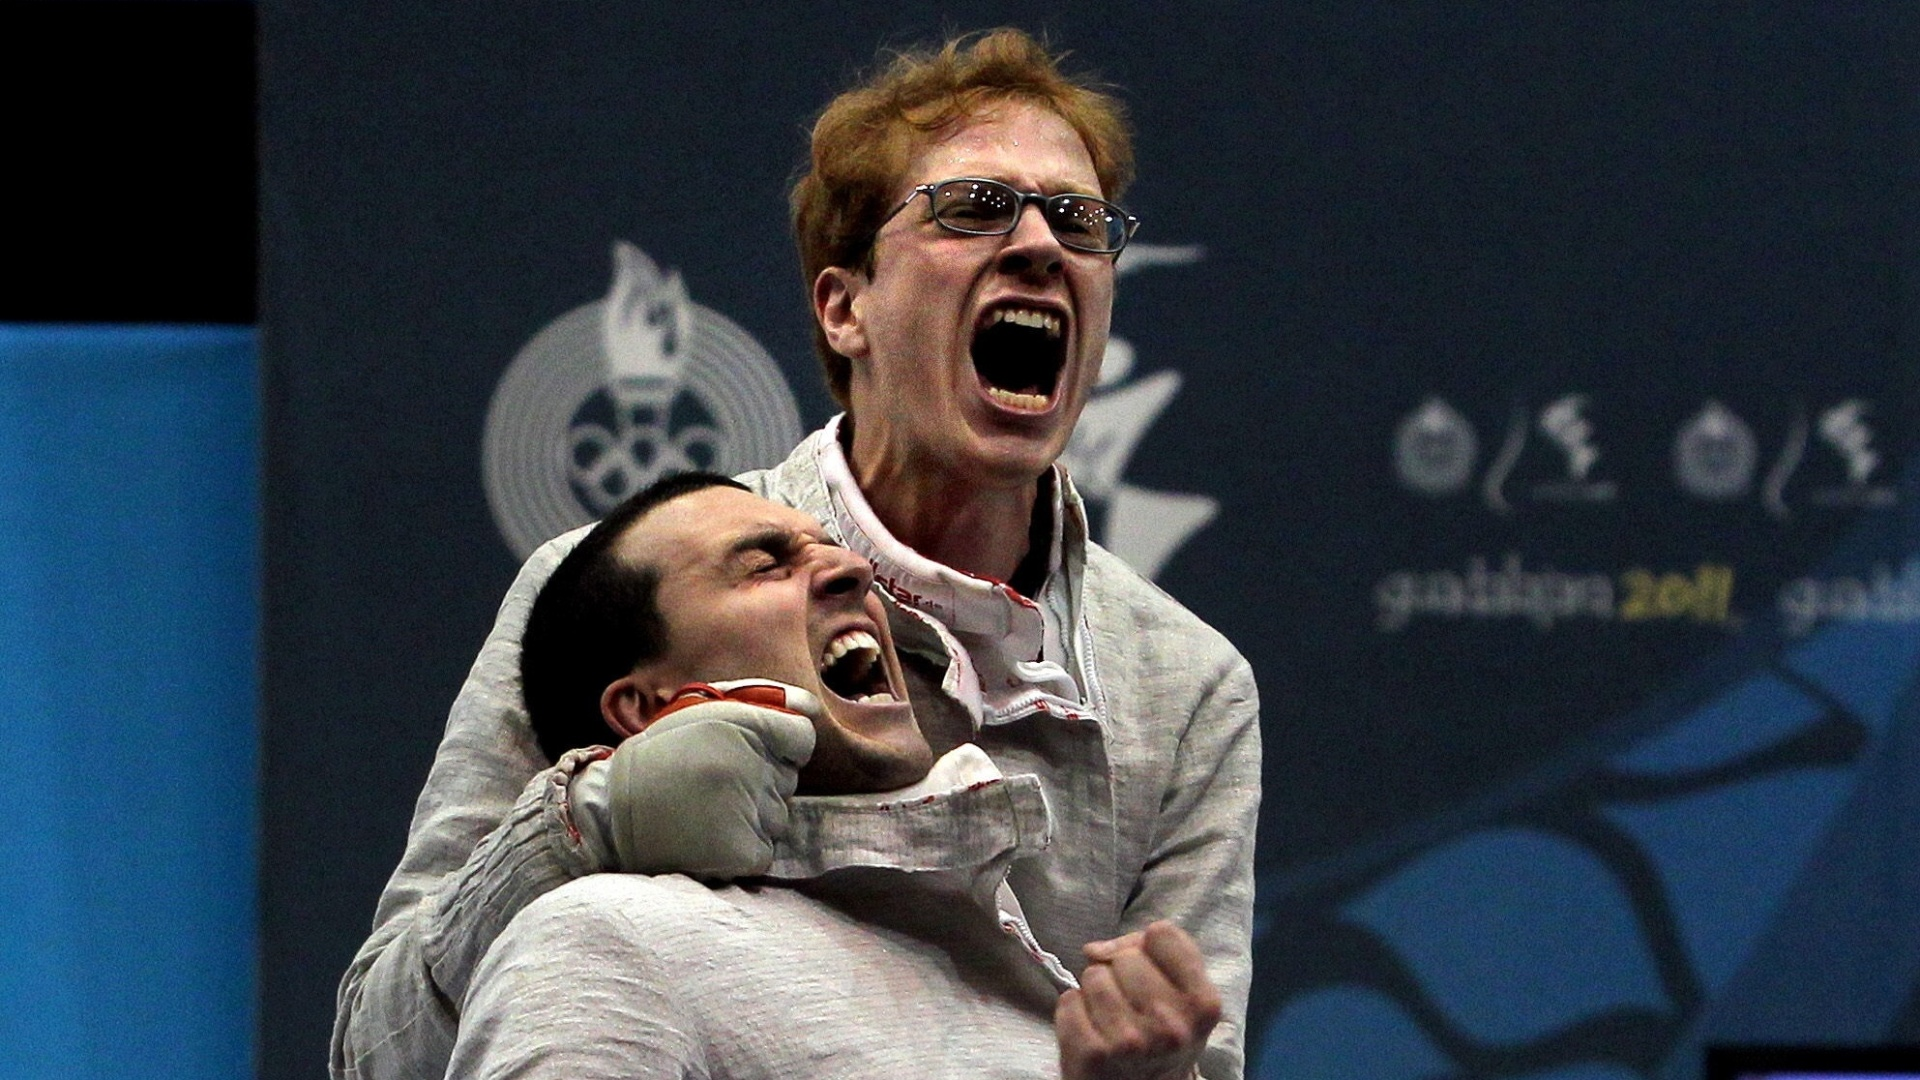 Renzo Agresta e William Zeytounlian vibram com o bronze no sabre por equipes (29/10/2011)